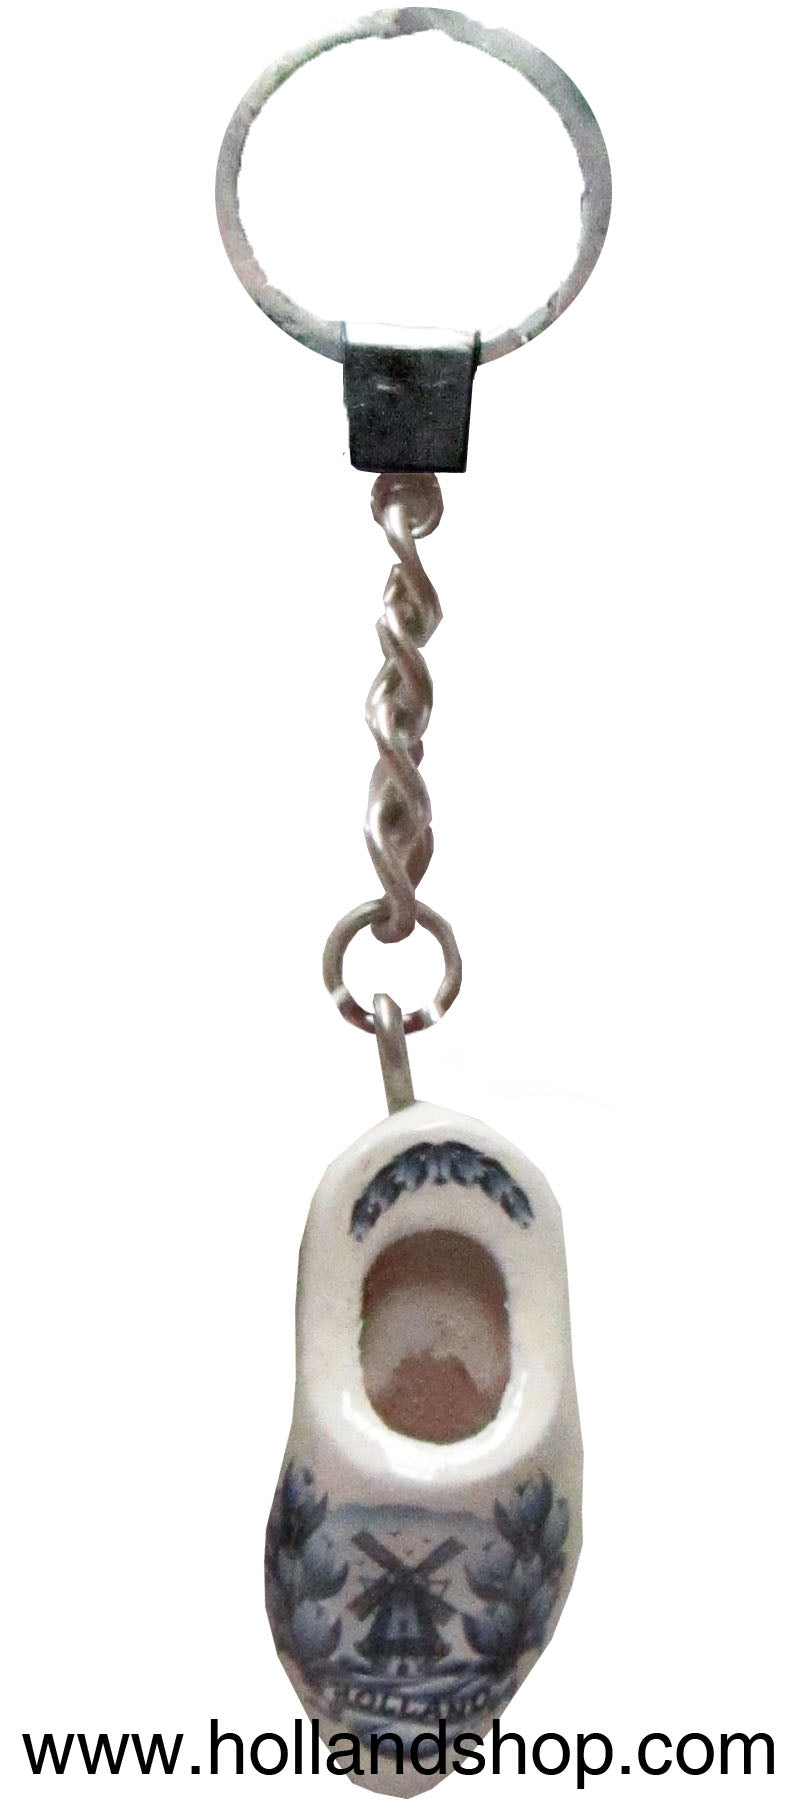 Keychain - Single Wooden Shoe (Delft Blue) 4cm